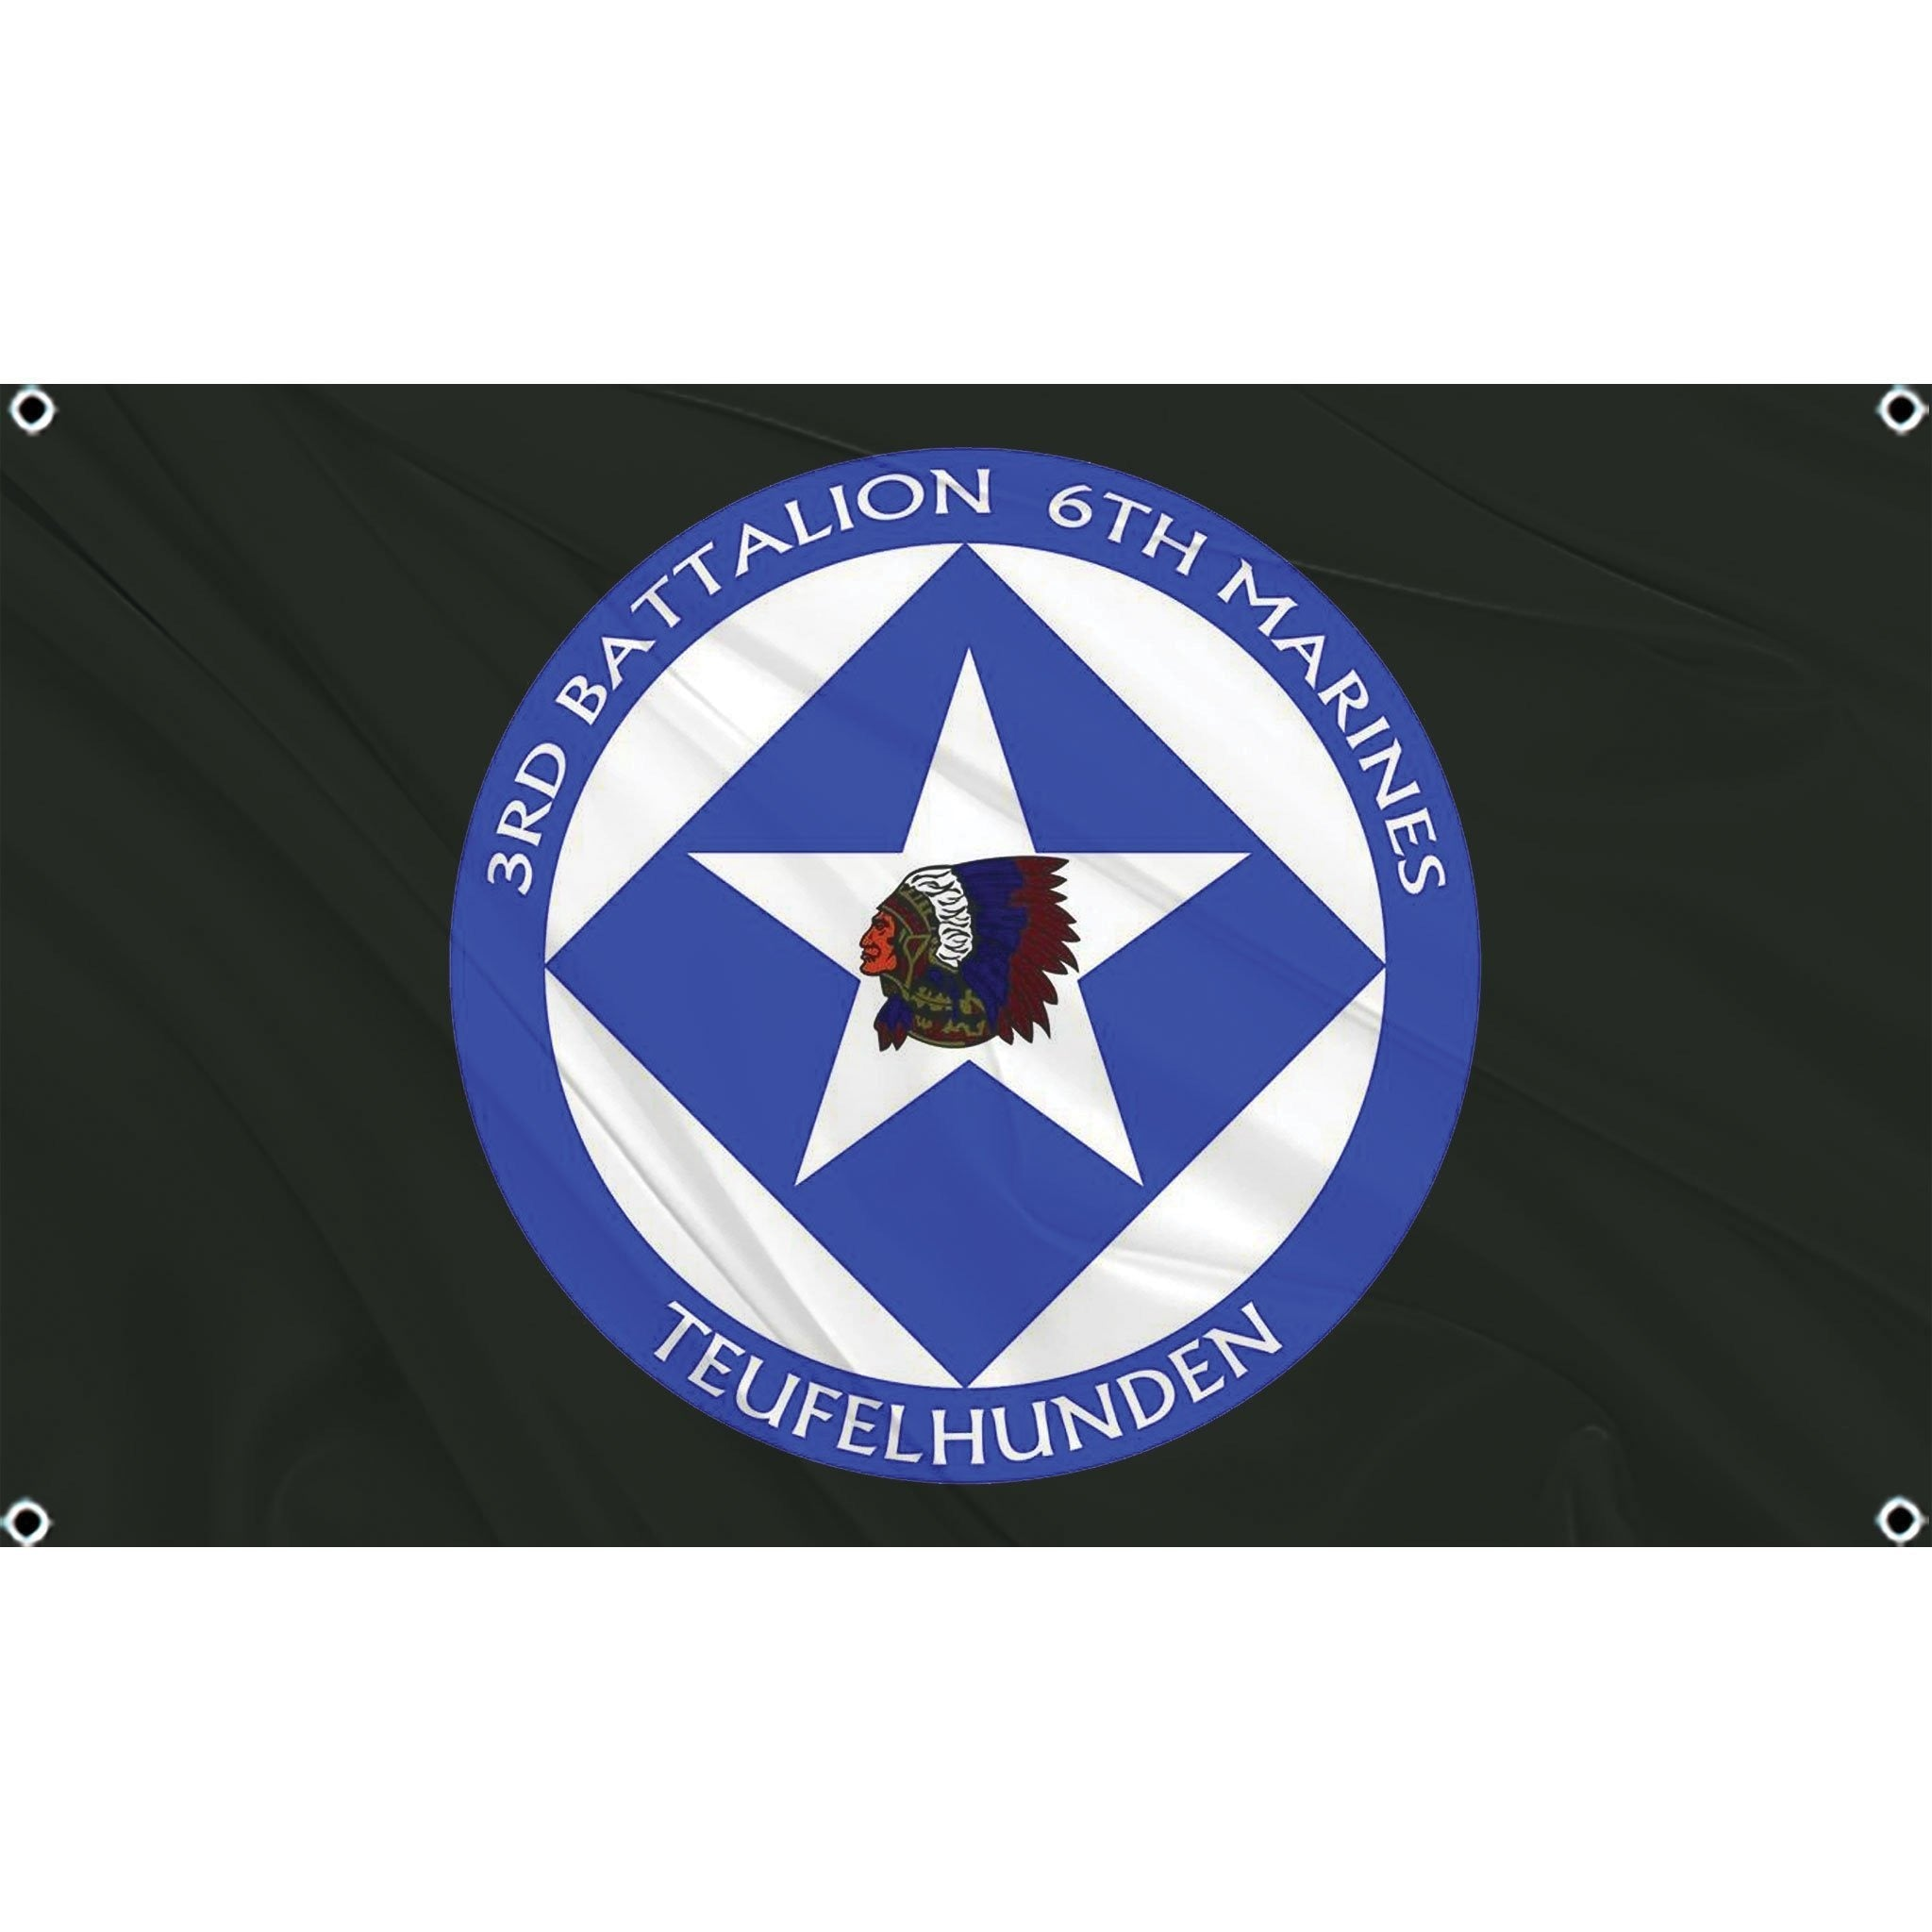 3rd Battalion 6th Marines logo on black flag